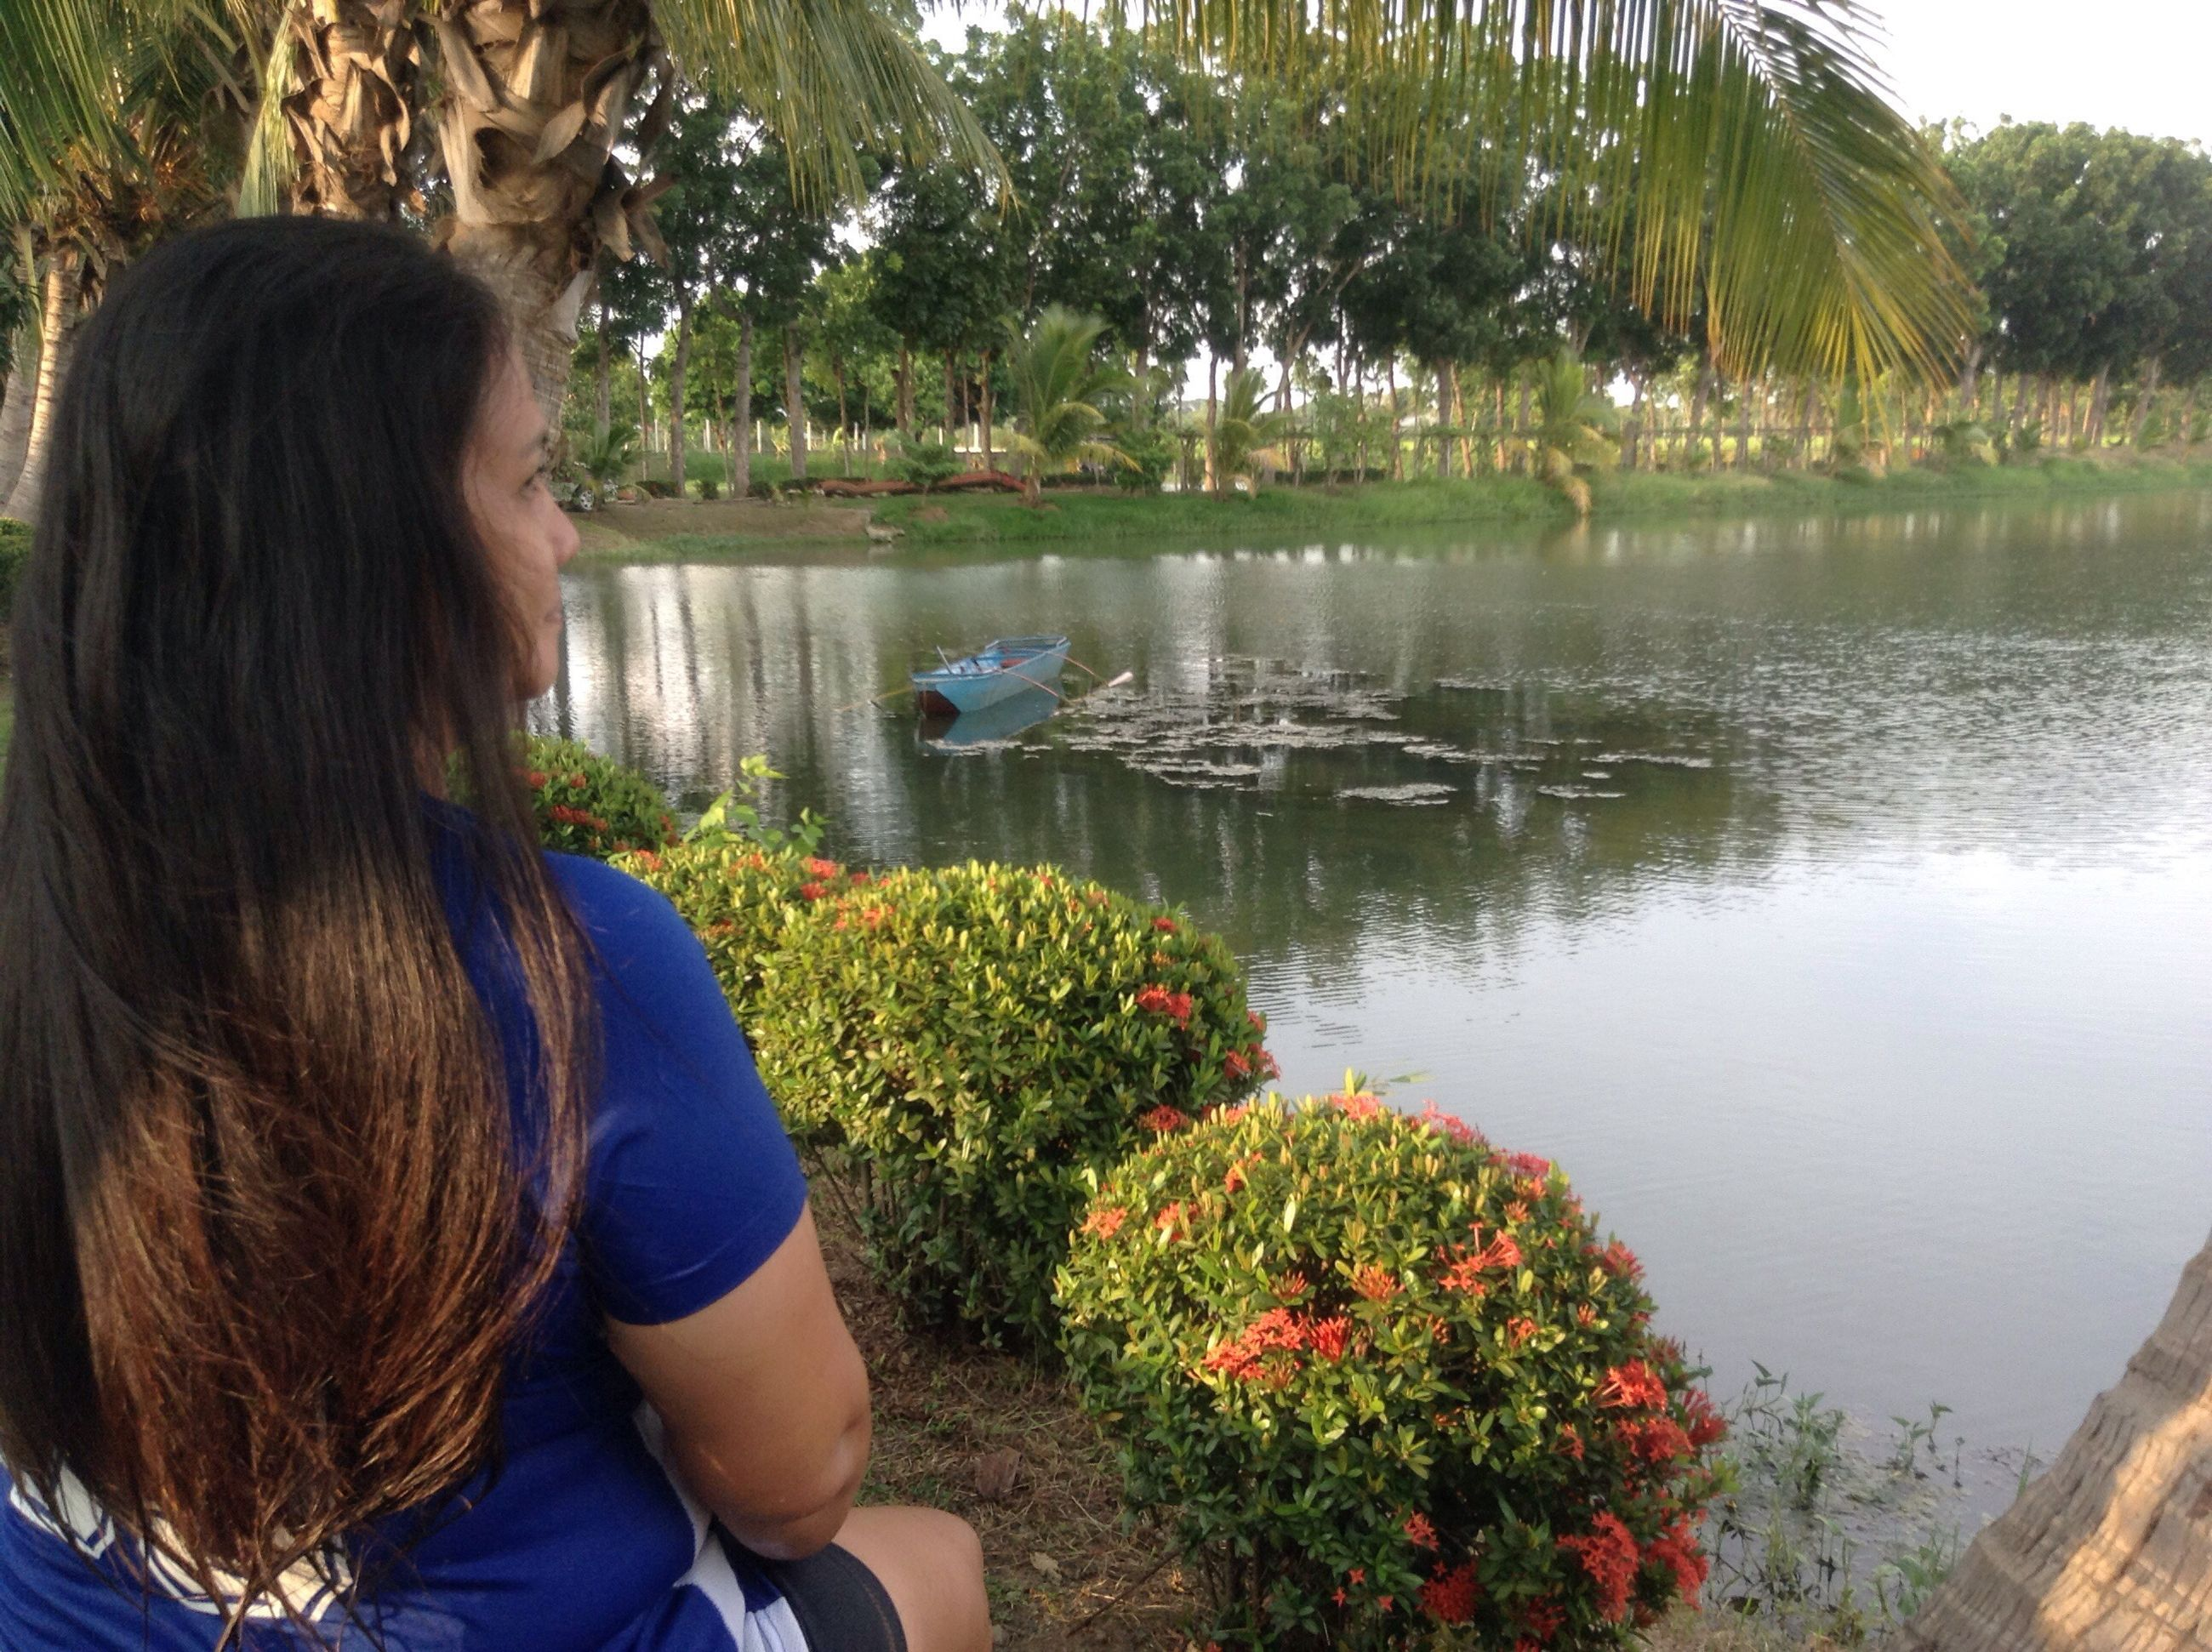 real people, one person, water, nature, flower, plant, day, rear view, outdoors, long hair, lake, leisure activity, women, lifestyles, beauty in nature, tree, growth, young women, young adult